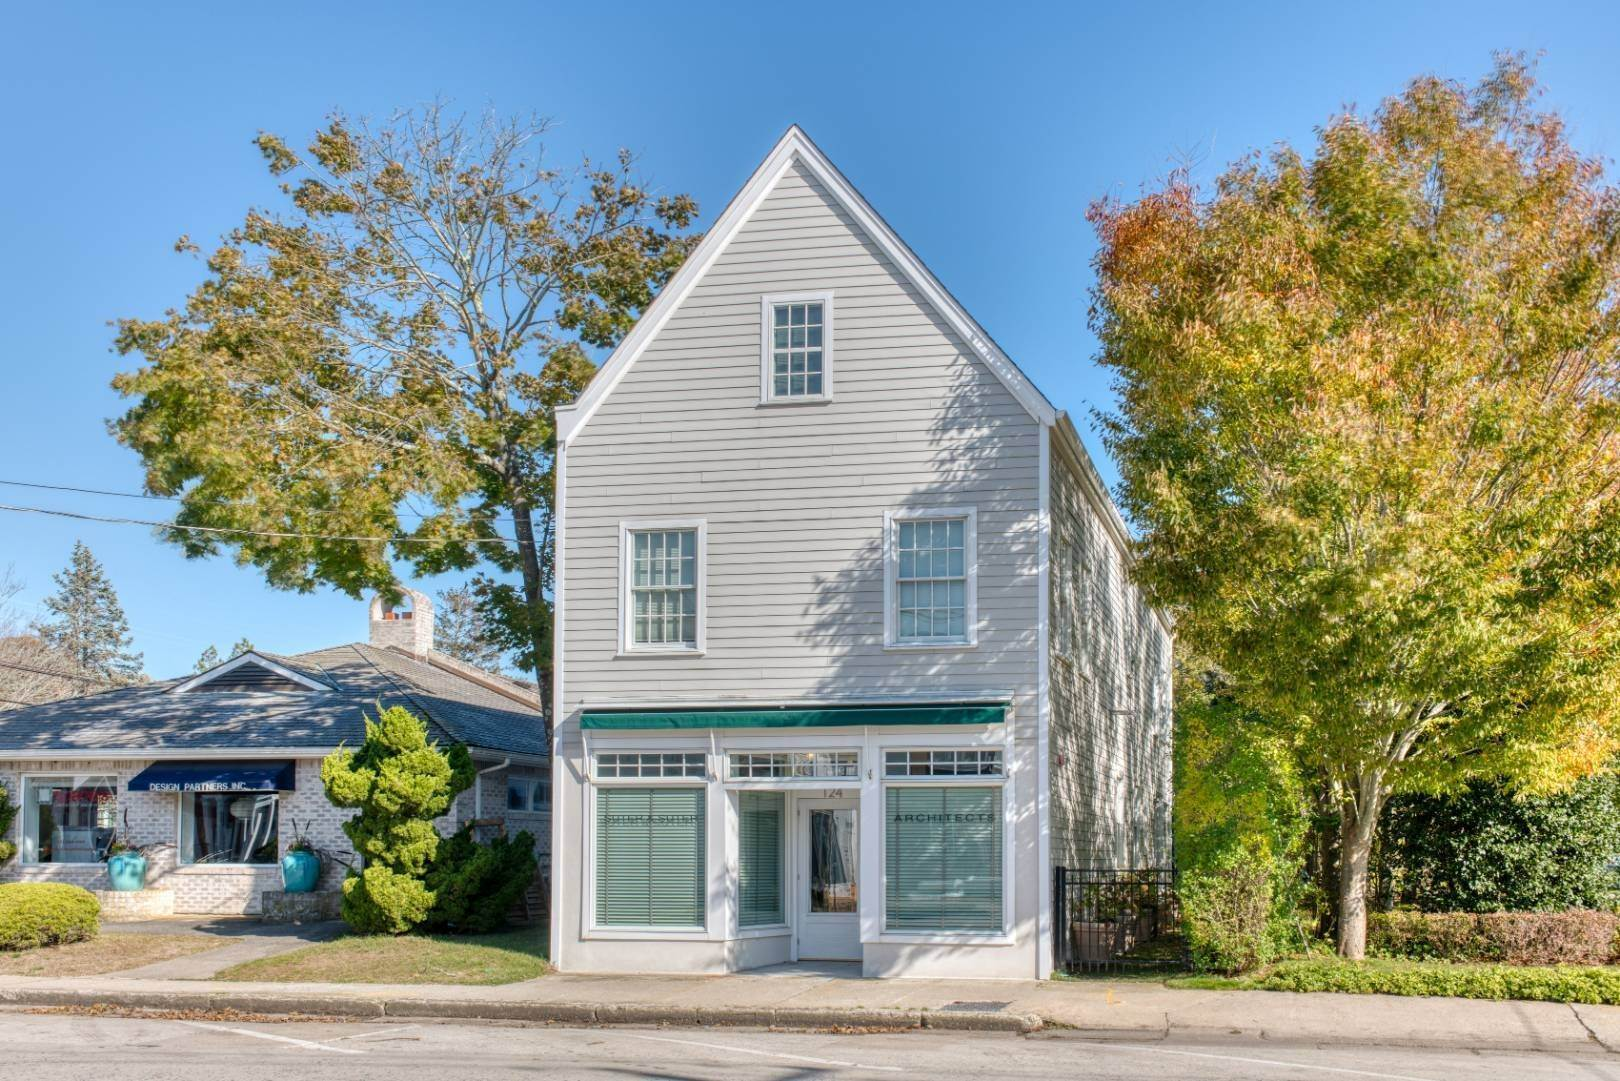 Single Family Home for Sale at Quogue Village Amazing Opportunity 124 Jessup Ave, Quogue Village, NY 11959